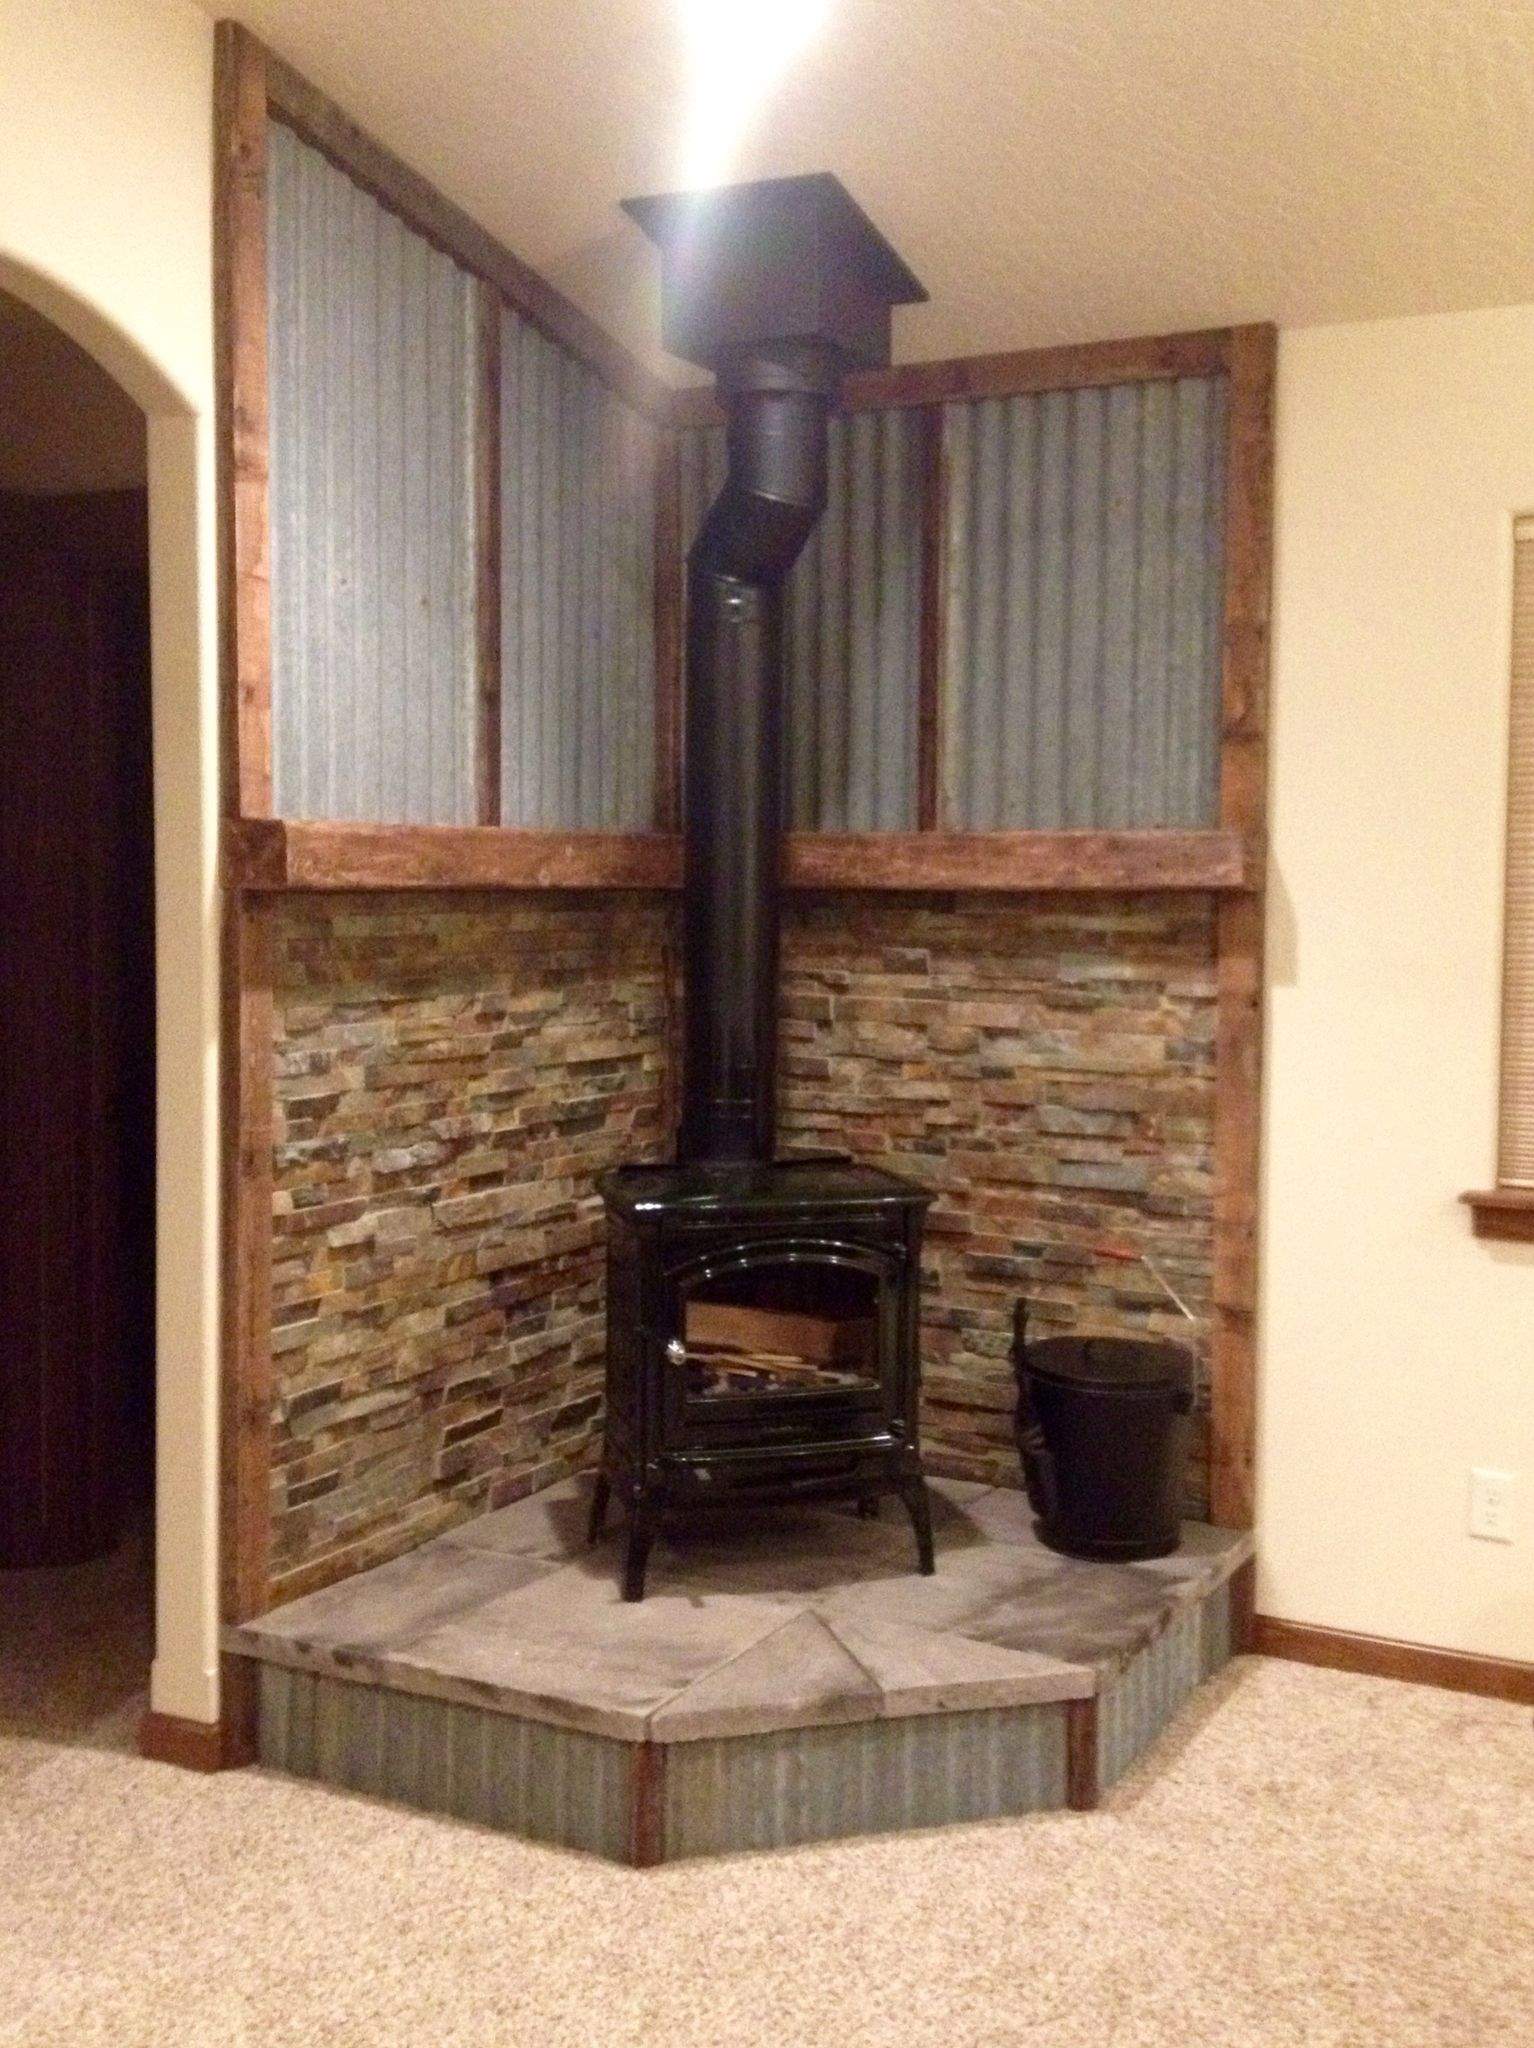 Fireplace Hearth Mantel With Images Wood Stove Surround Wood Stove Hearth Wood Stove Fireplace